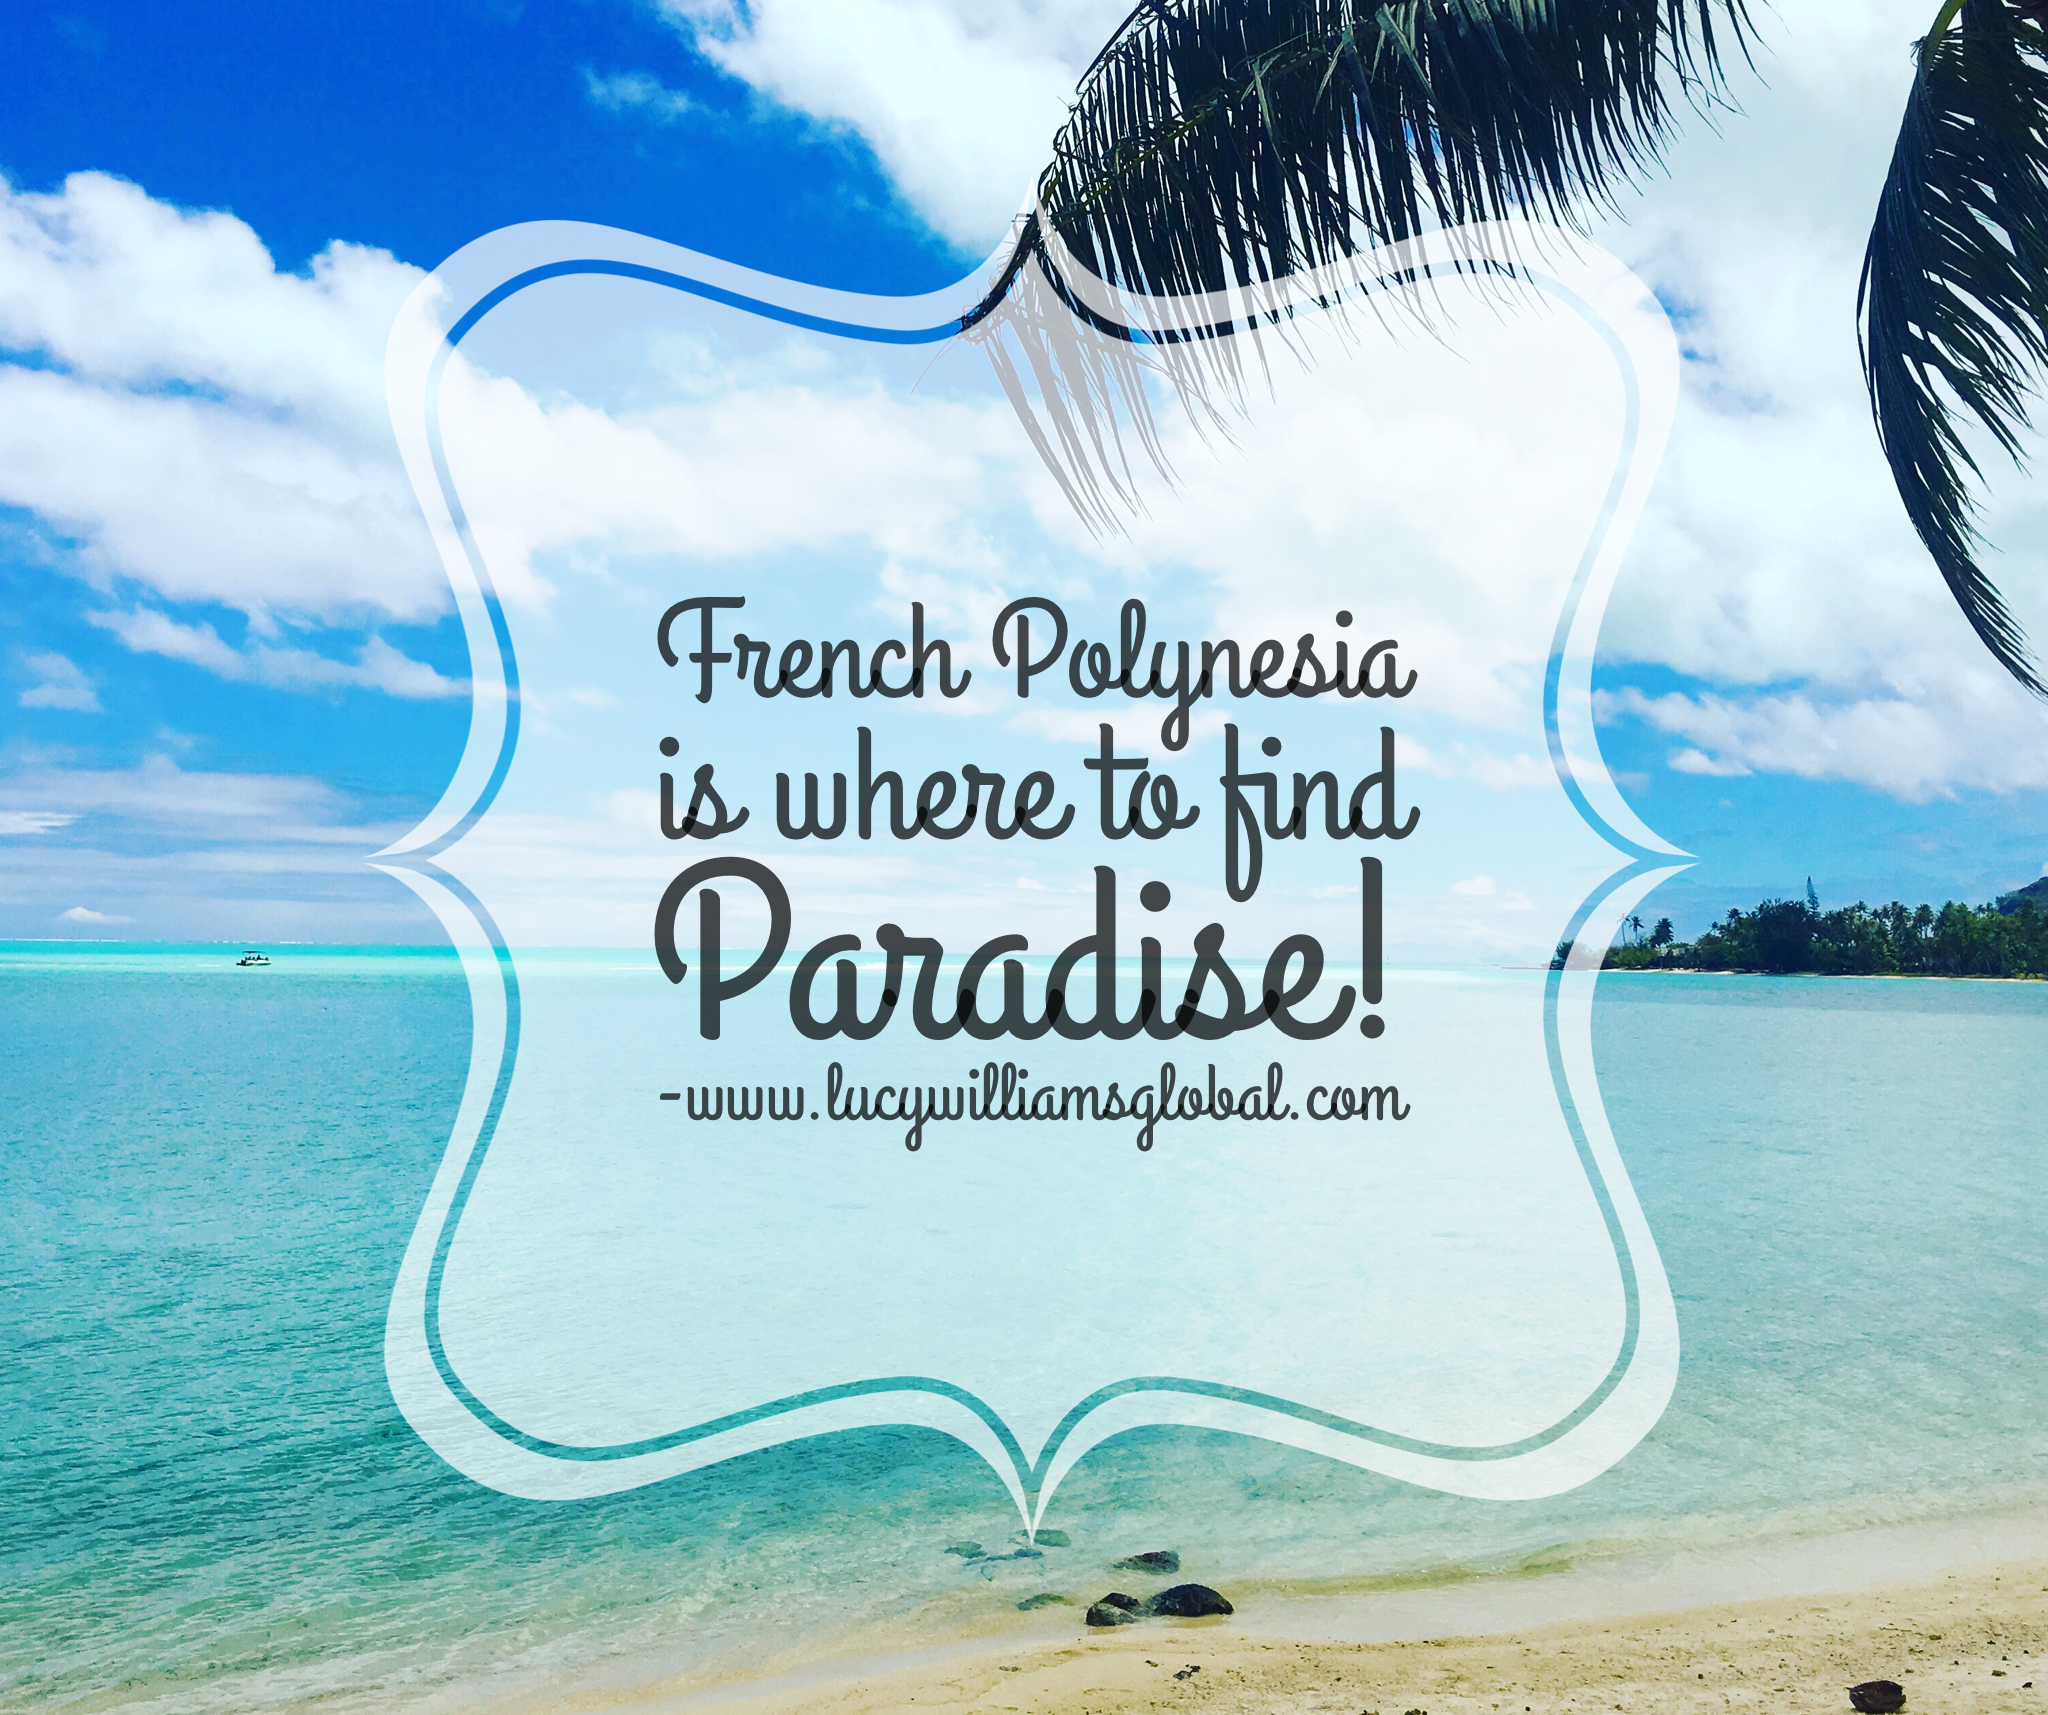 French Polynesia is where to find Paradise - Lucy Williams Global - Bora Bora - Moorea